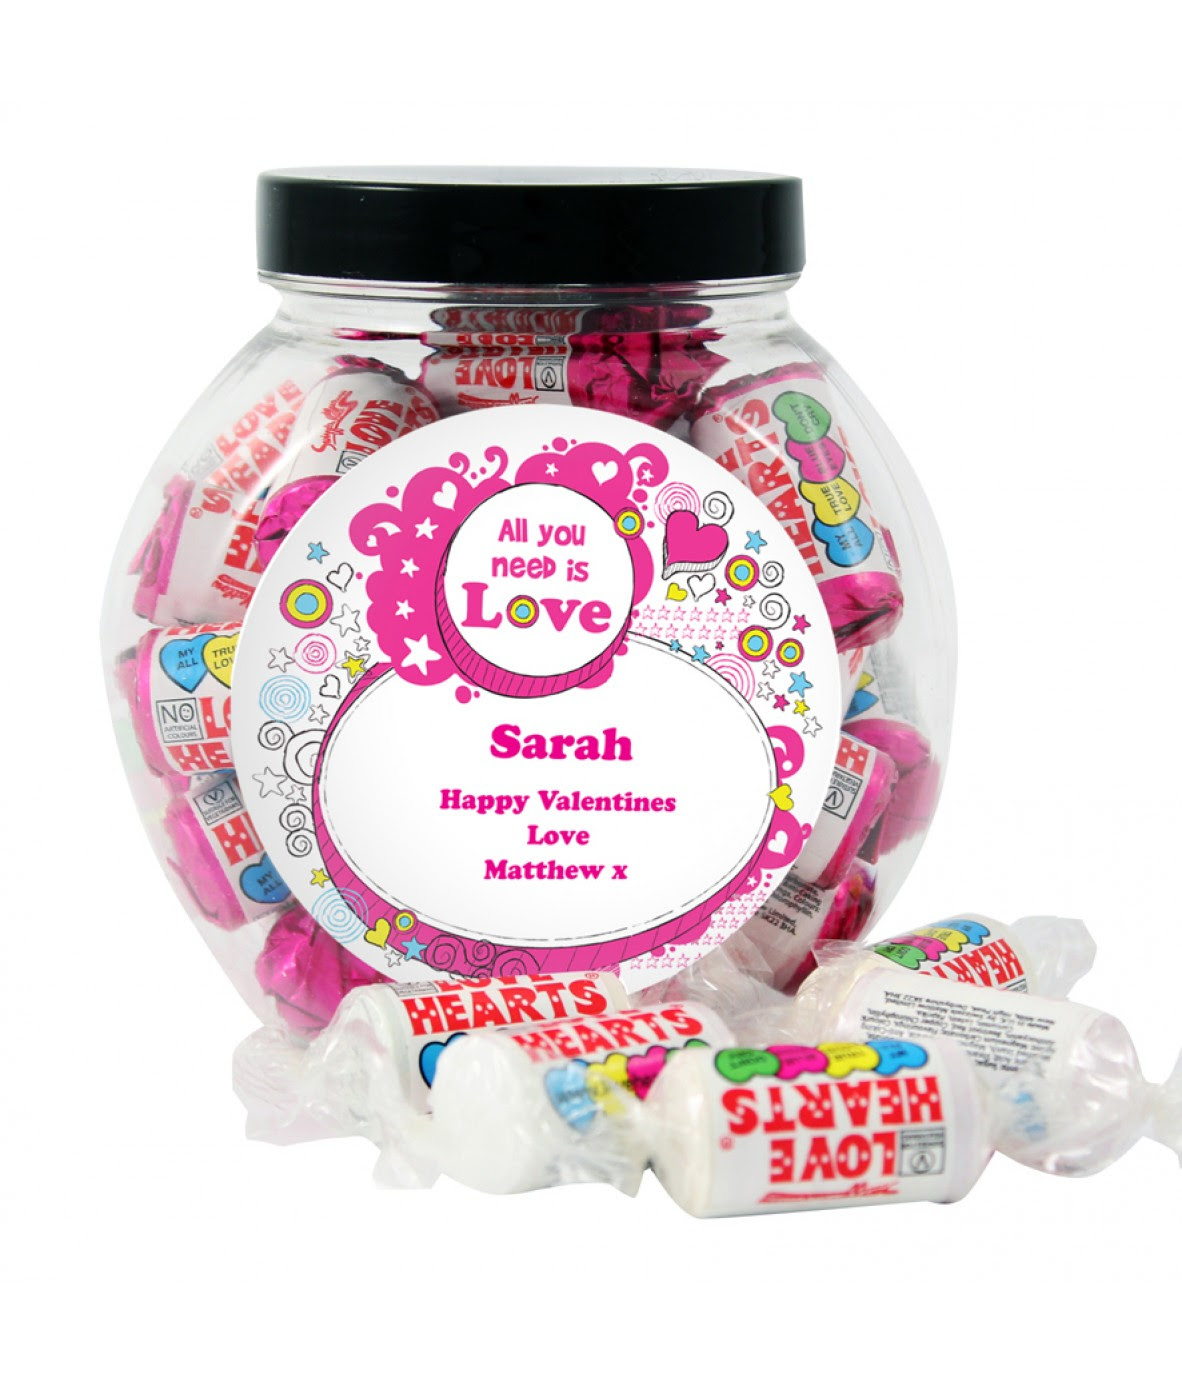 Love Heart Sweet Jar Just For Gifts